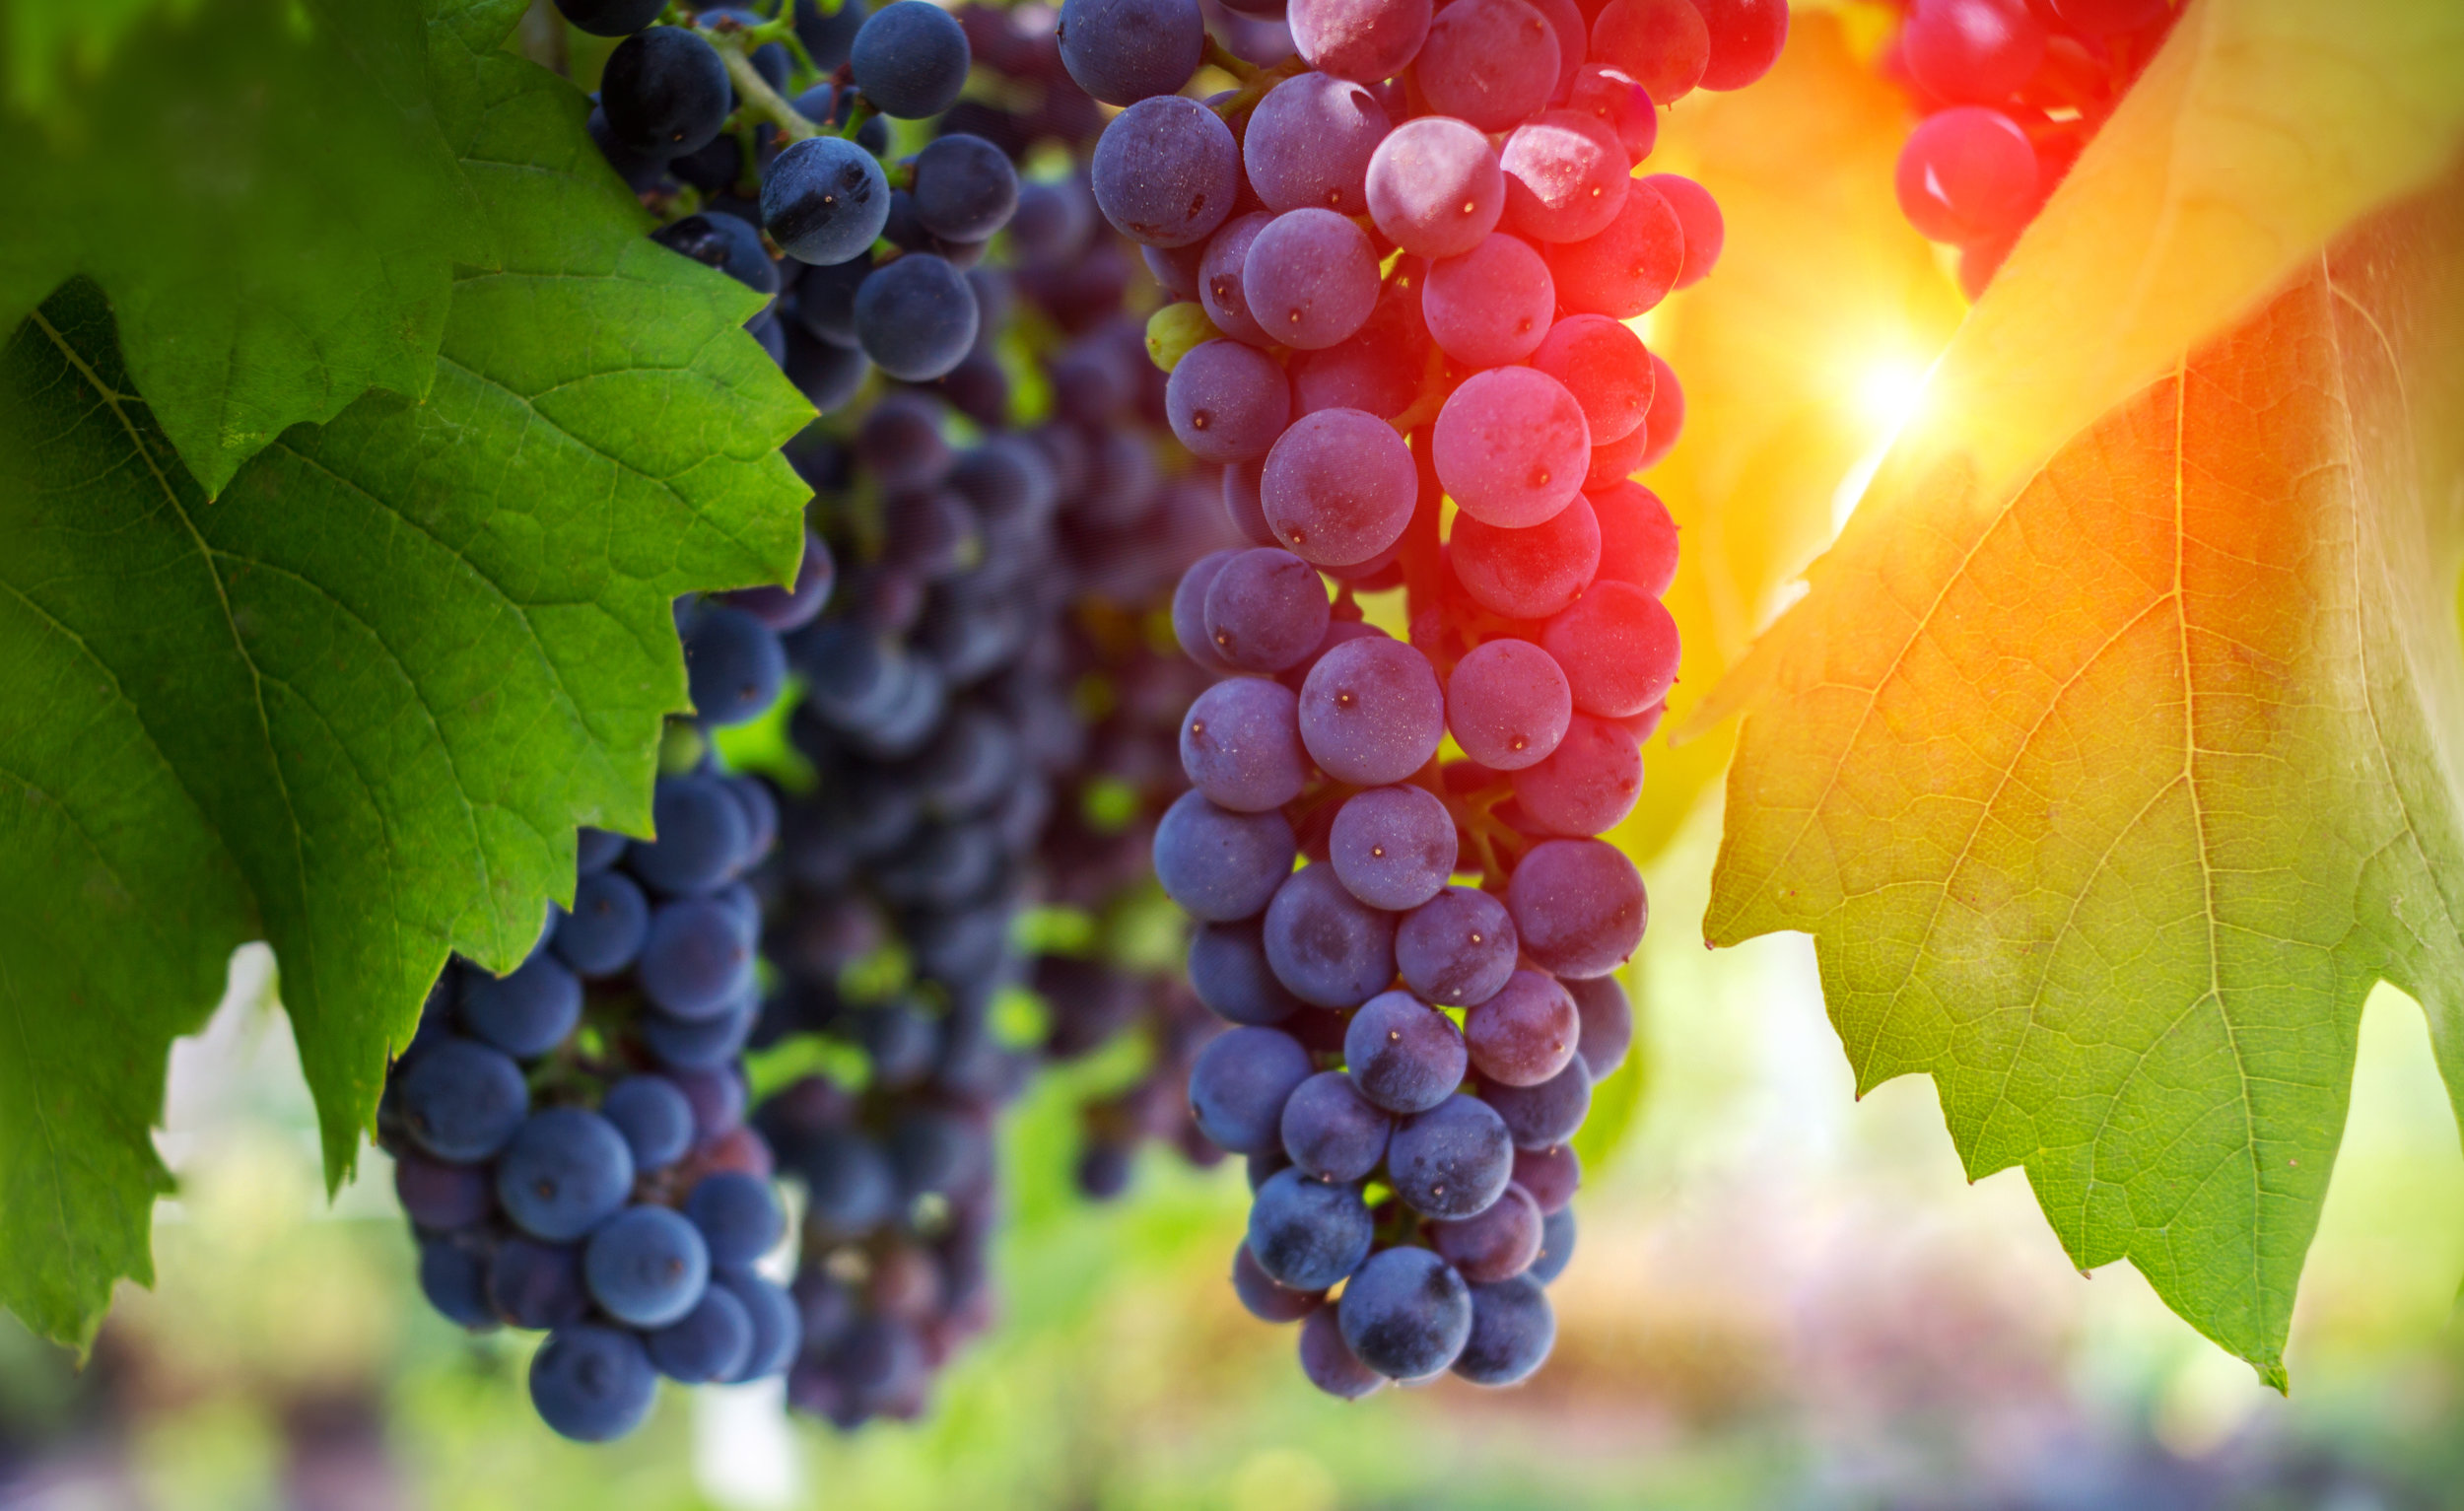 wine grapes, a ripe bunch of dark grapes, in the sun. Vineyards .